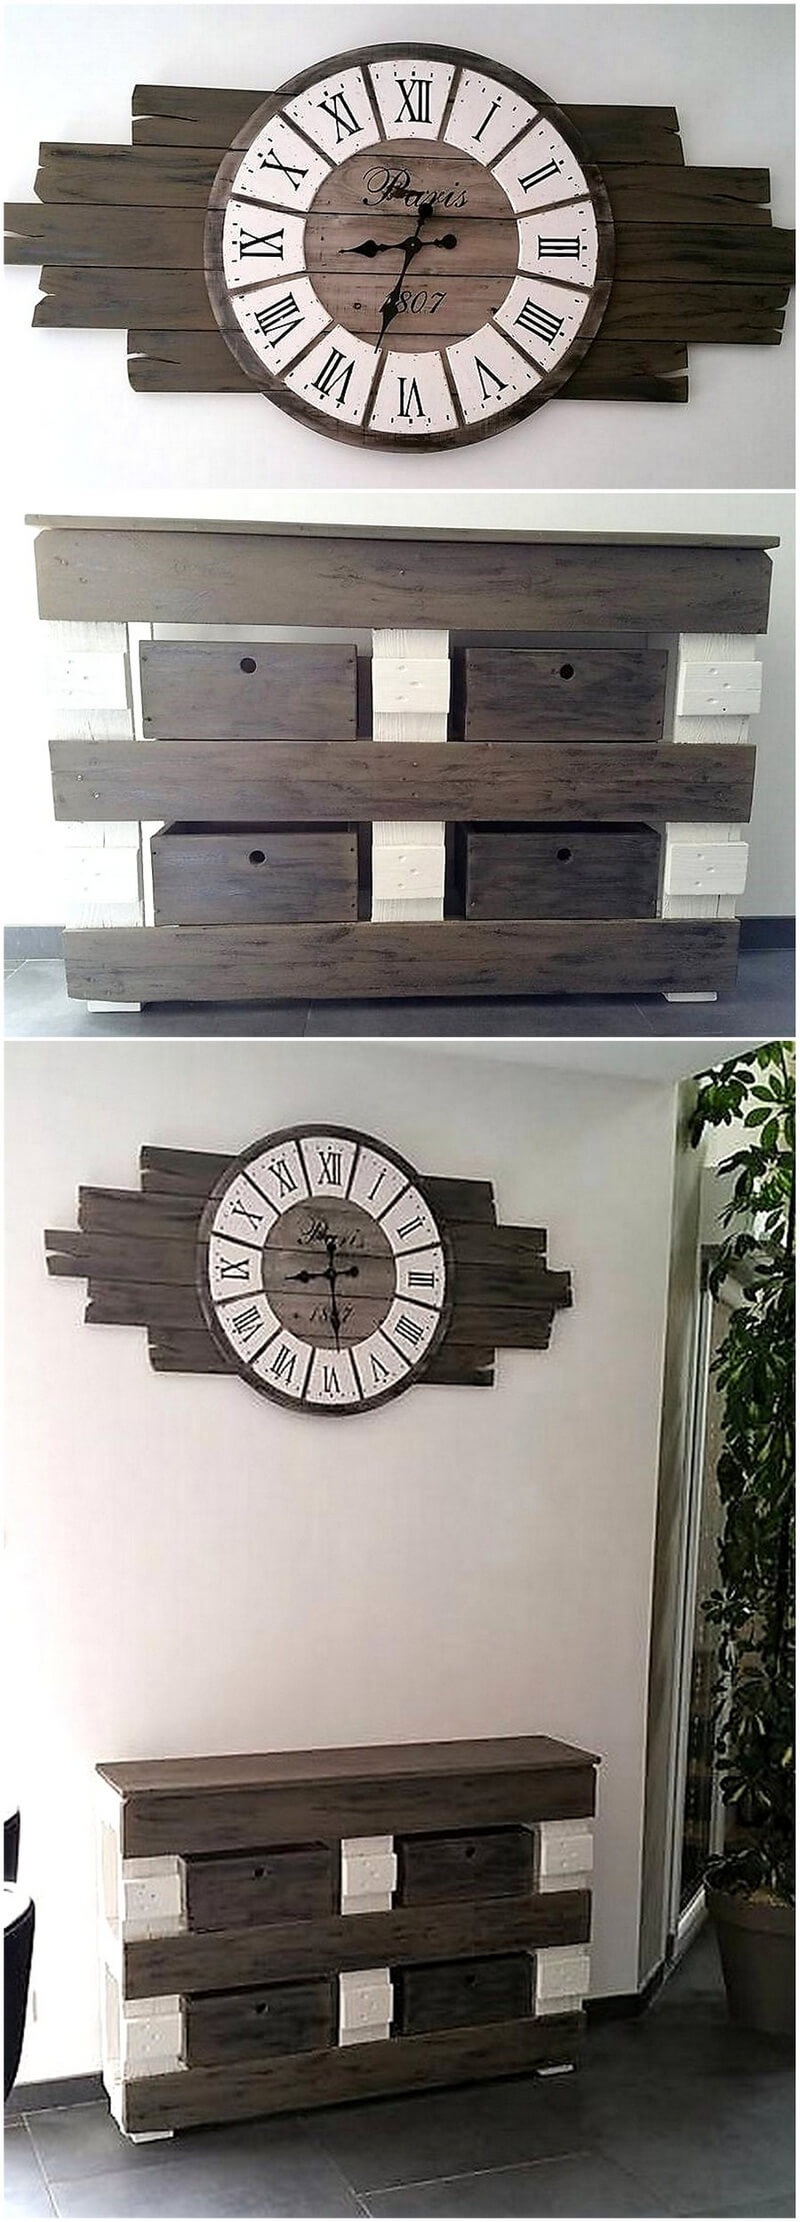 Large Wall Clock In Foyer : Incredible wood pallet ideas and projects